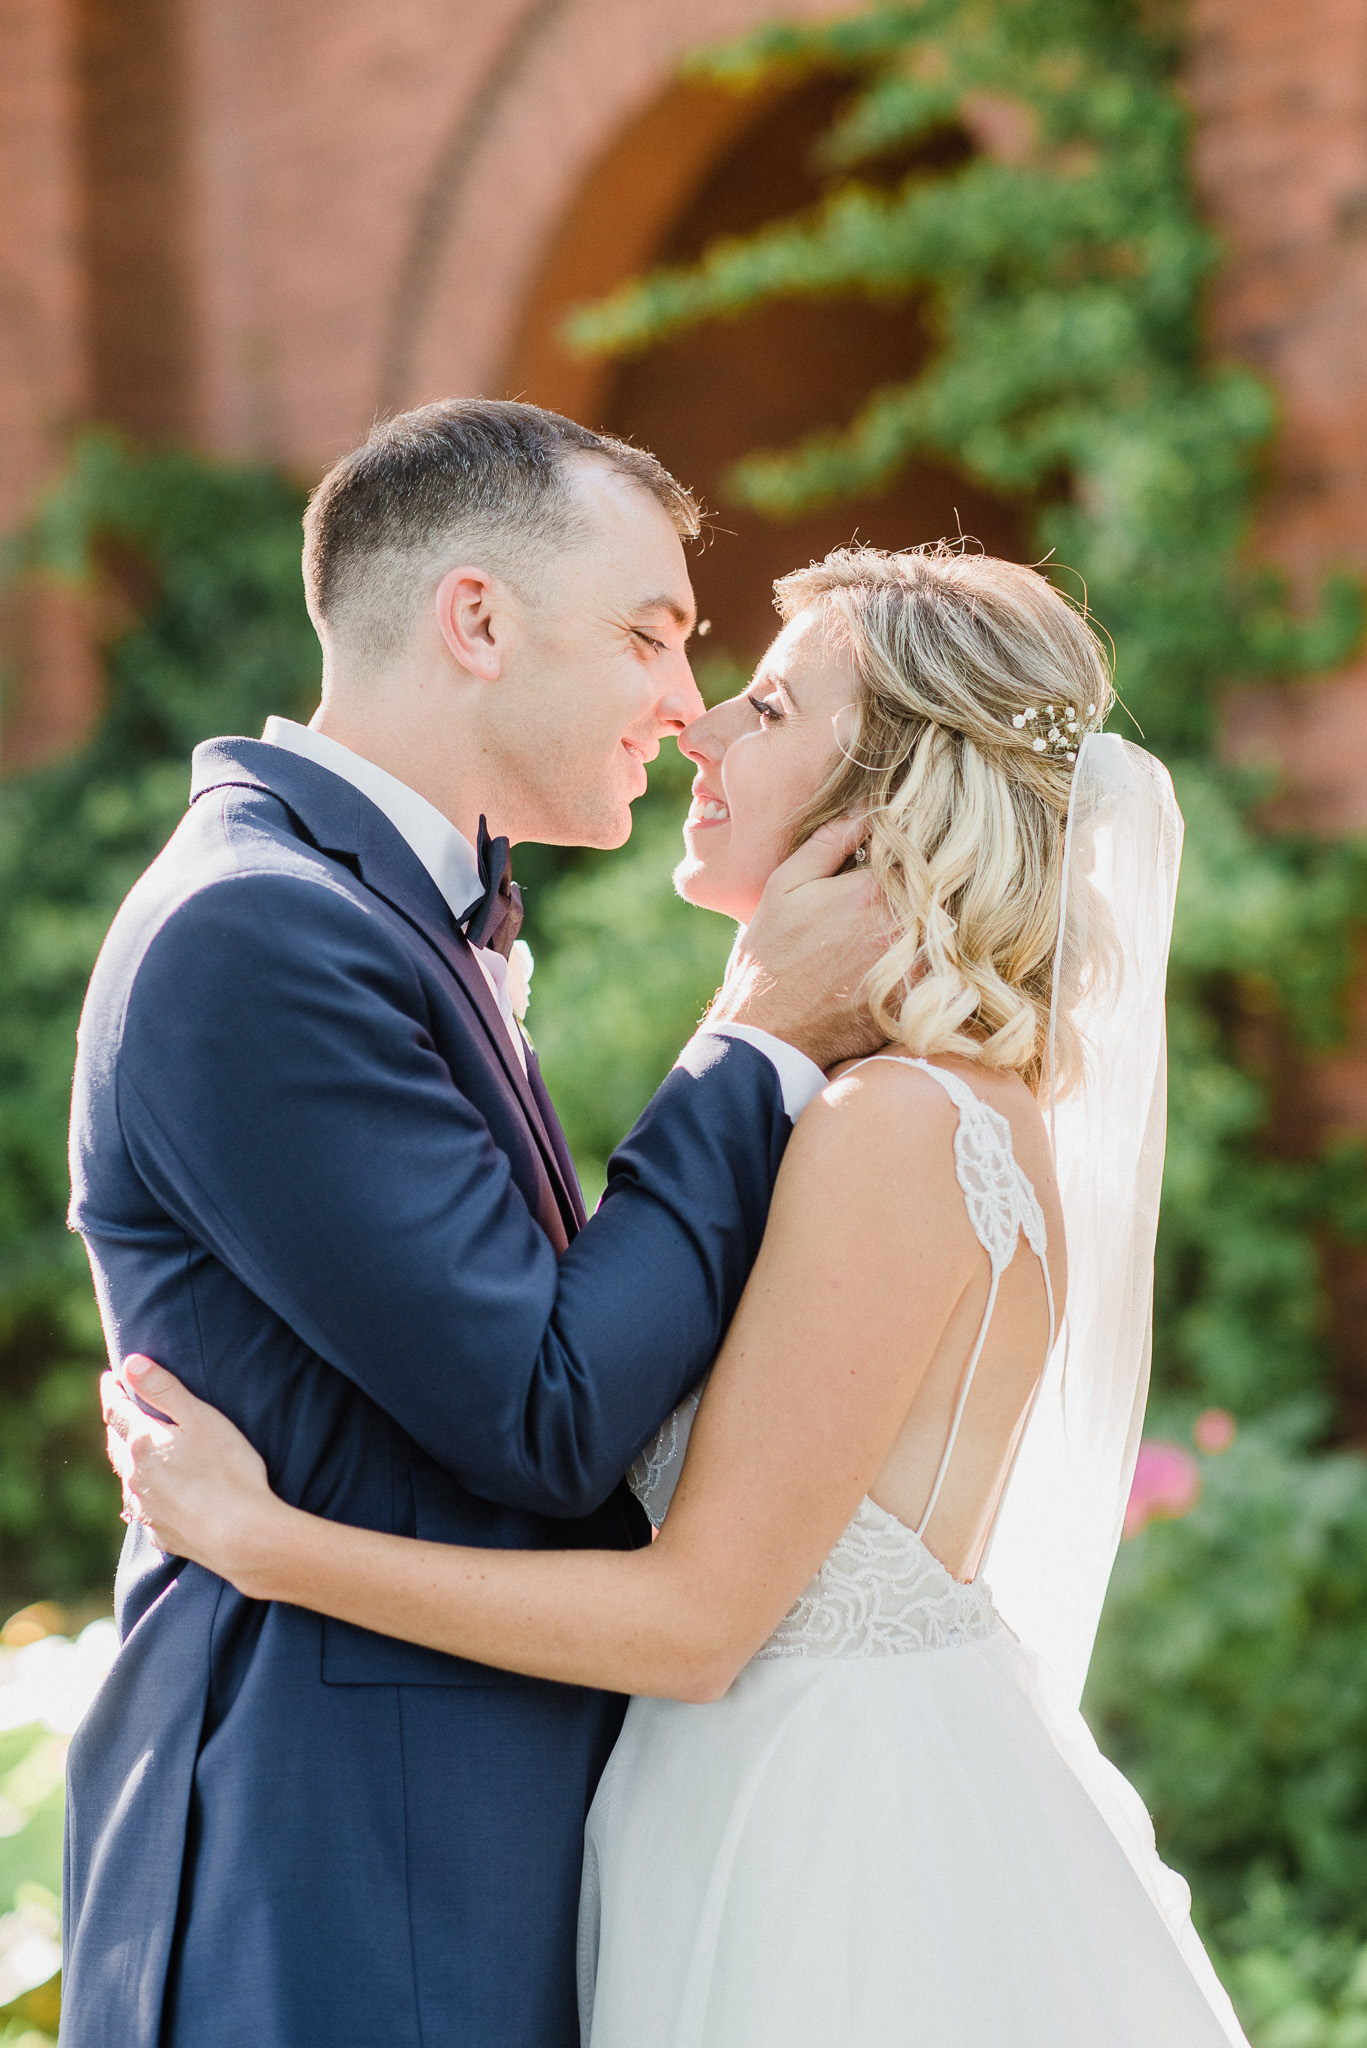 Bride and Groom Portraits at Honsberger Estate Winery by Jenn Kavanagh Photography | Burlington, Ontario Wedding